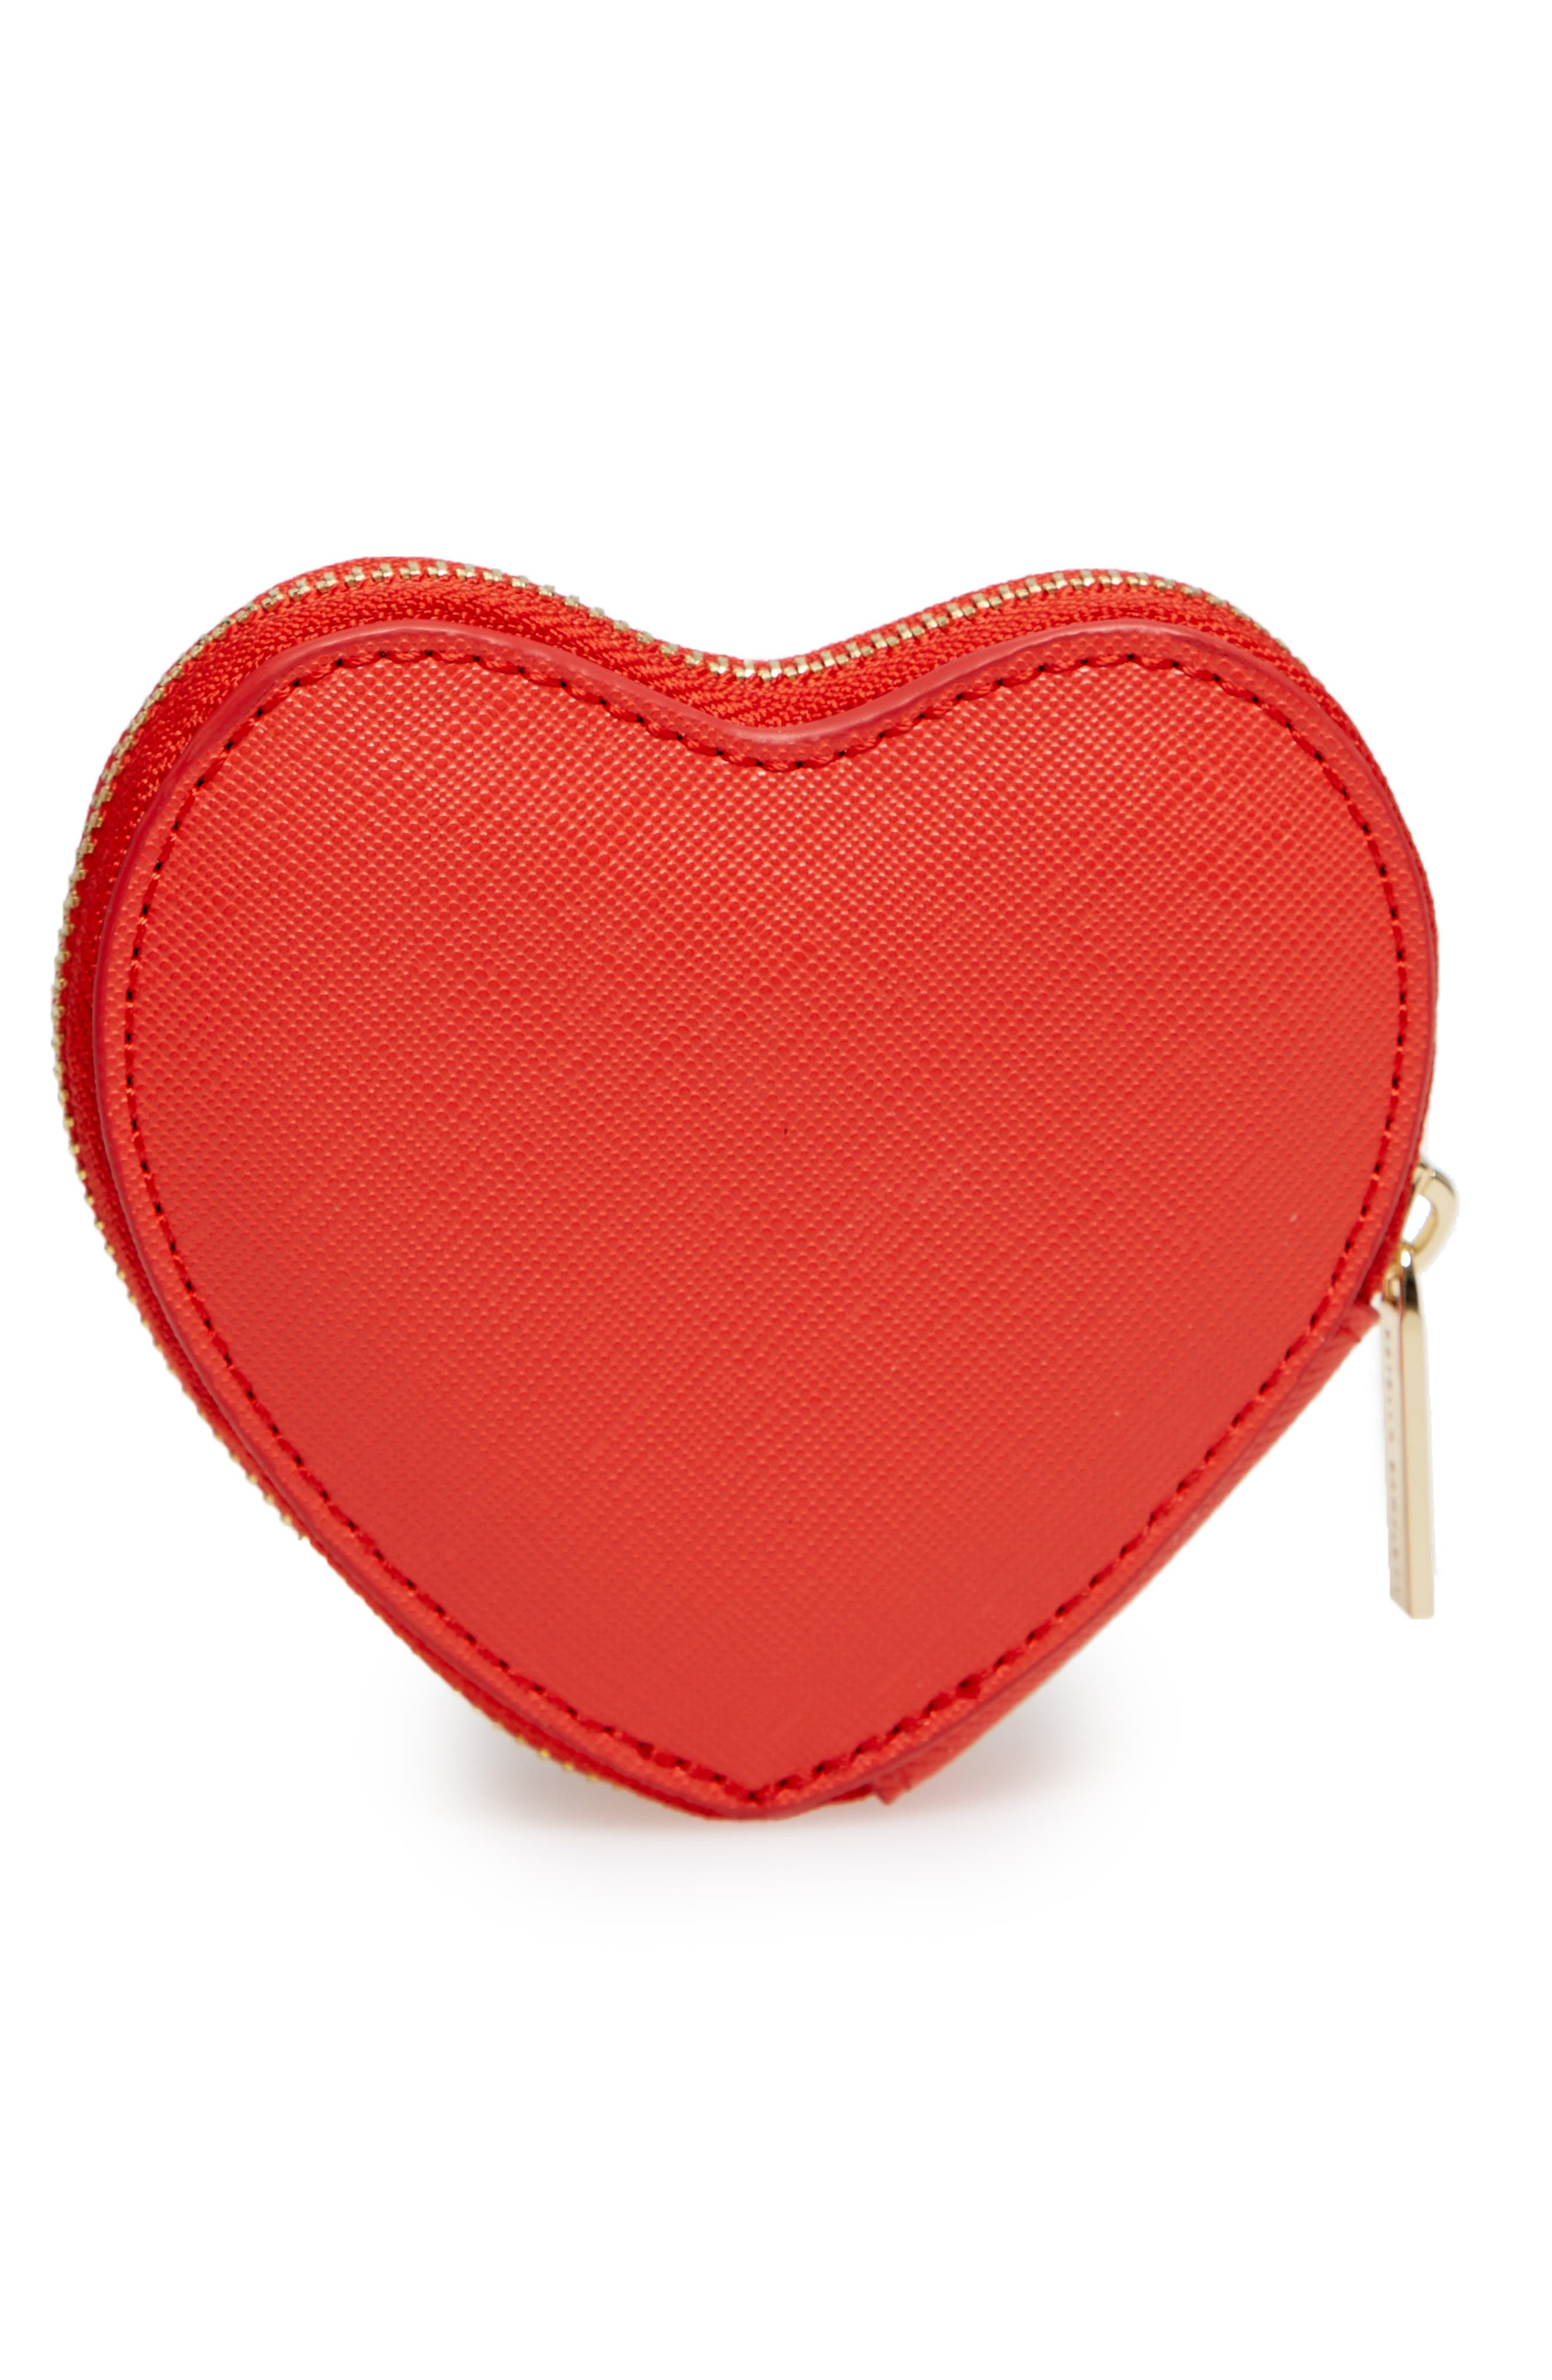 Dream Big Heart Faux Leather Coin Purse,                             Alternate thumbnail 3, color,